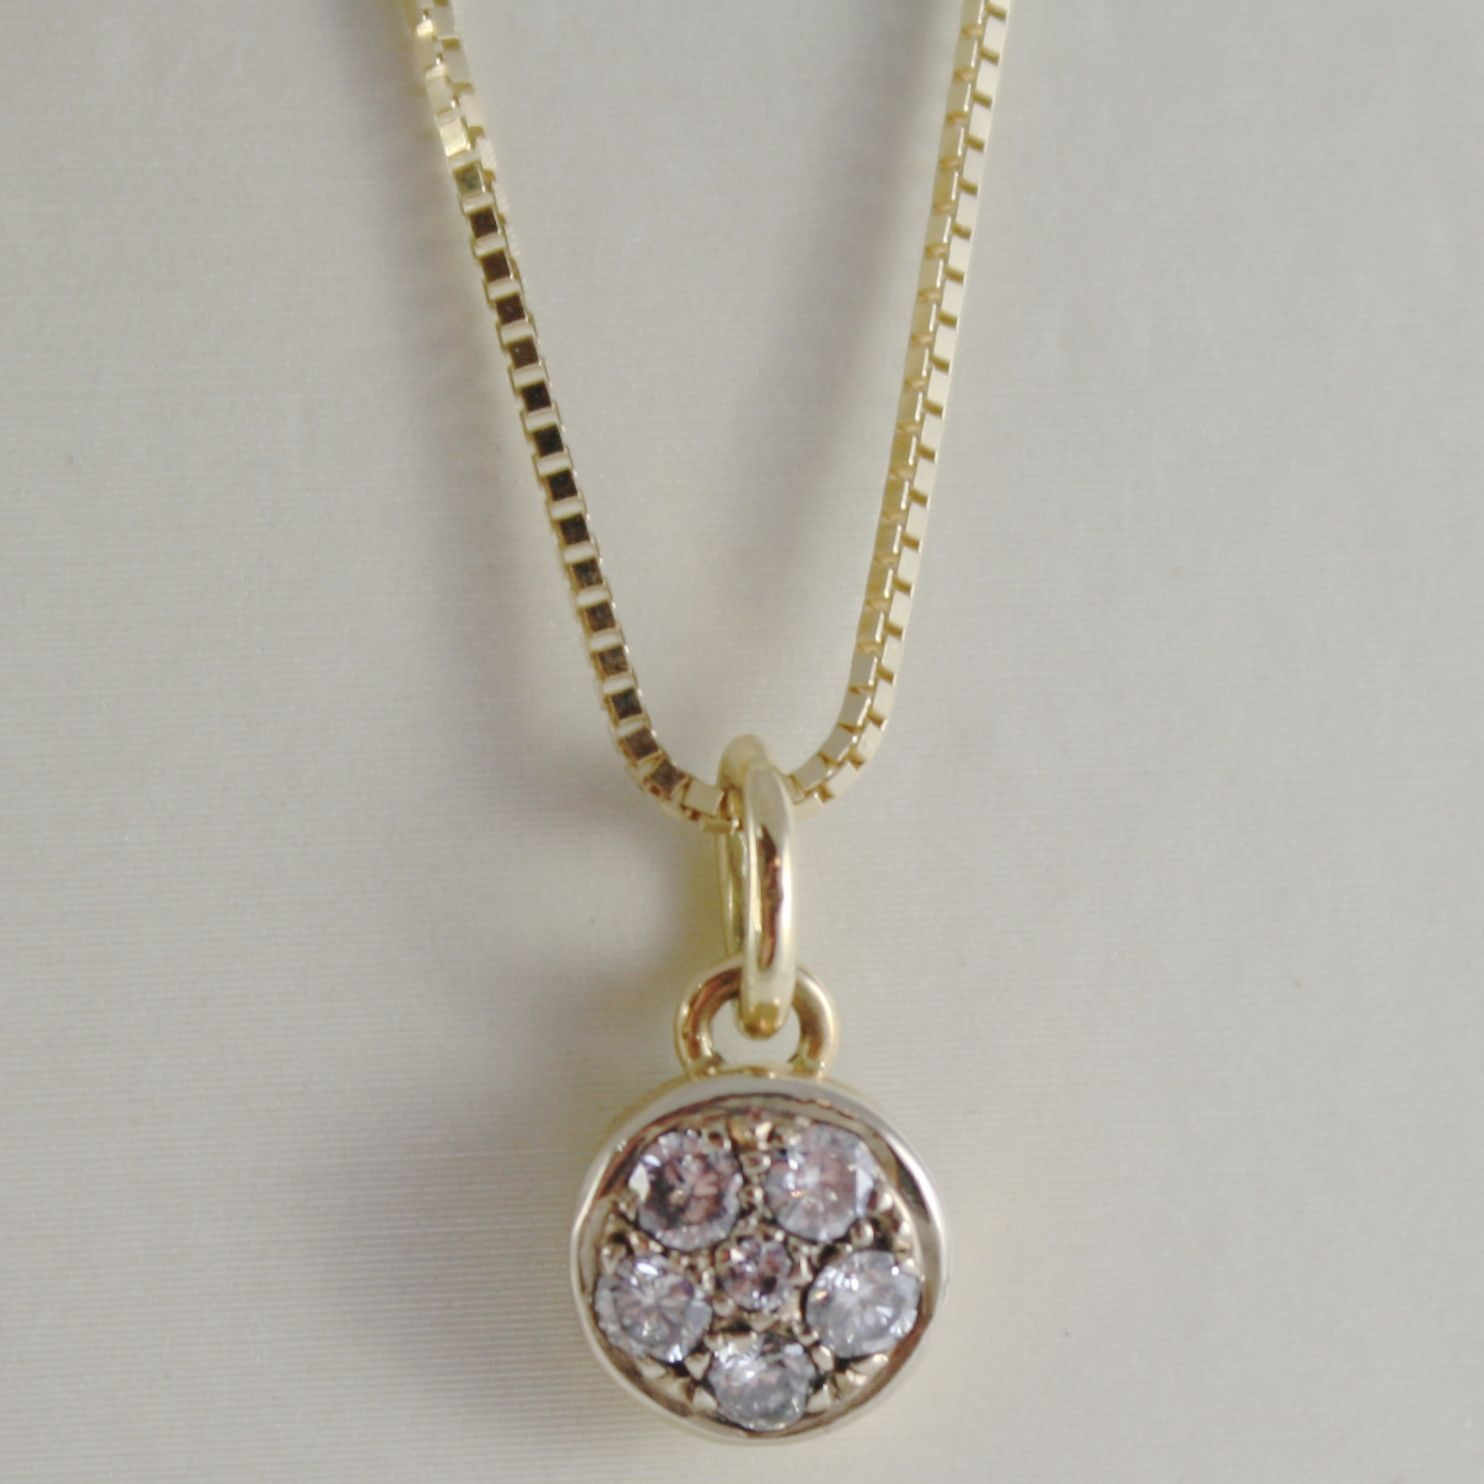 18K YELLOW GOLD NECKLACE WITH DIAMONDS 0.25 CARATS VENETIAN CHAIN MADE IN ITALY